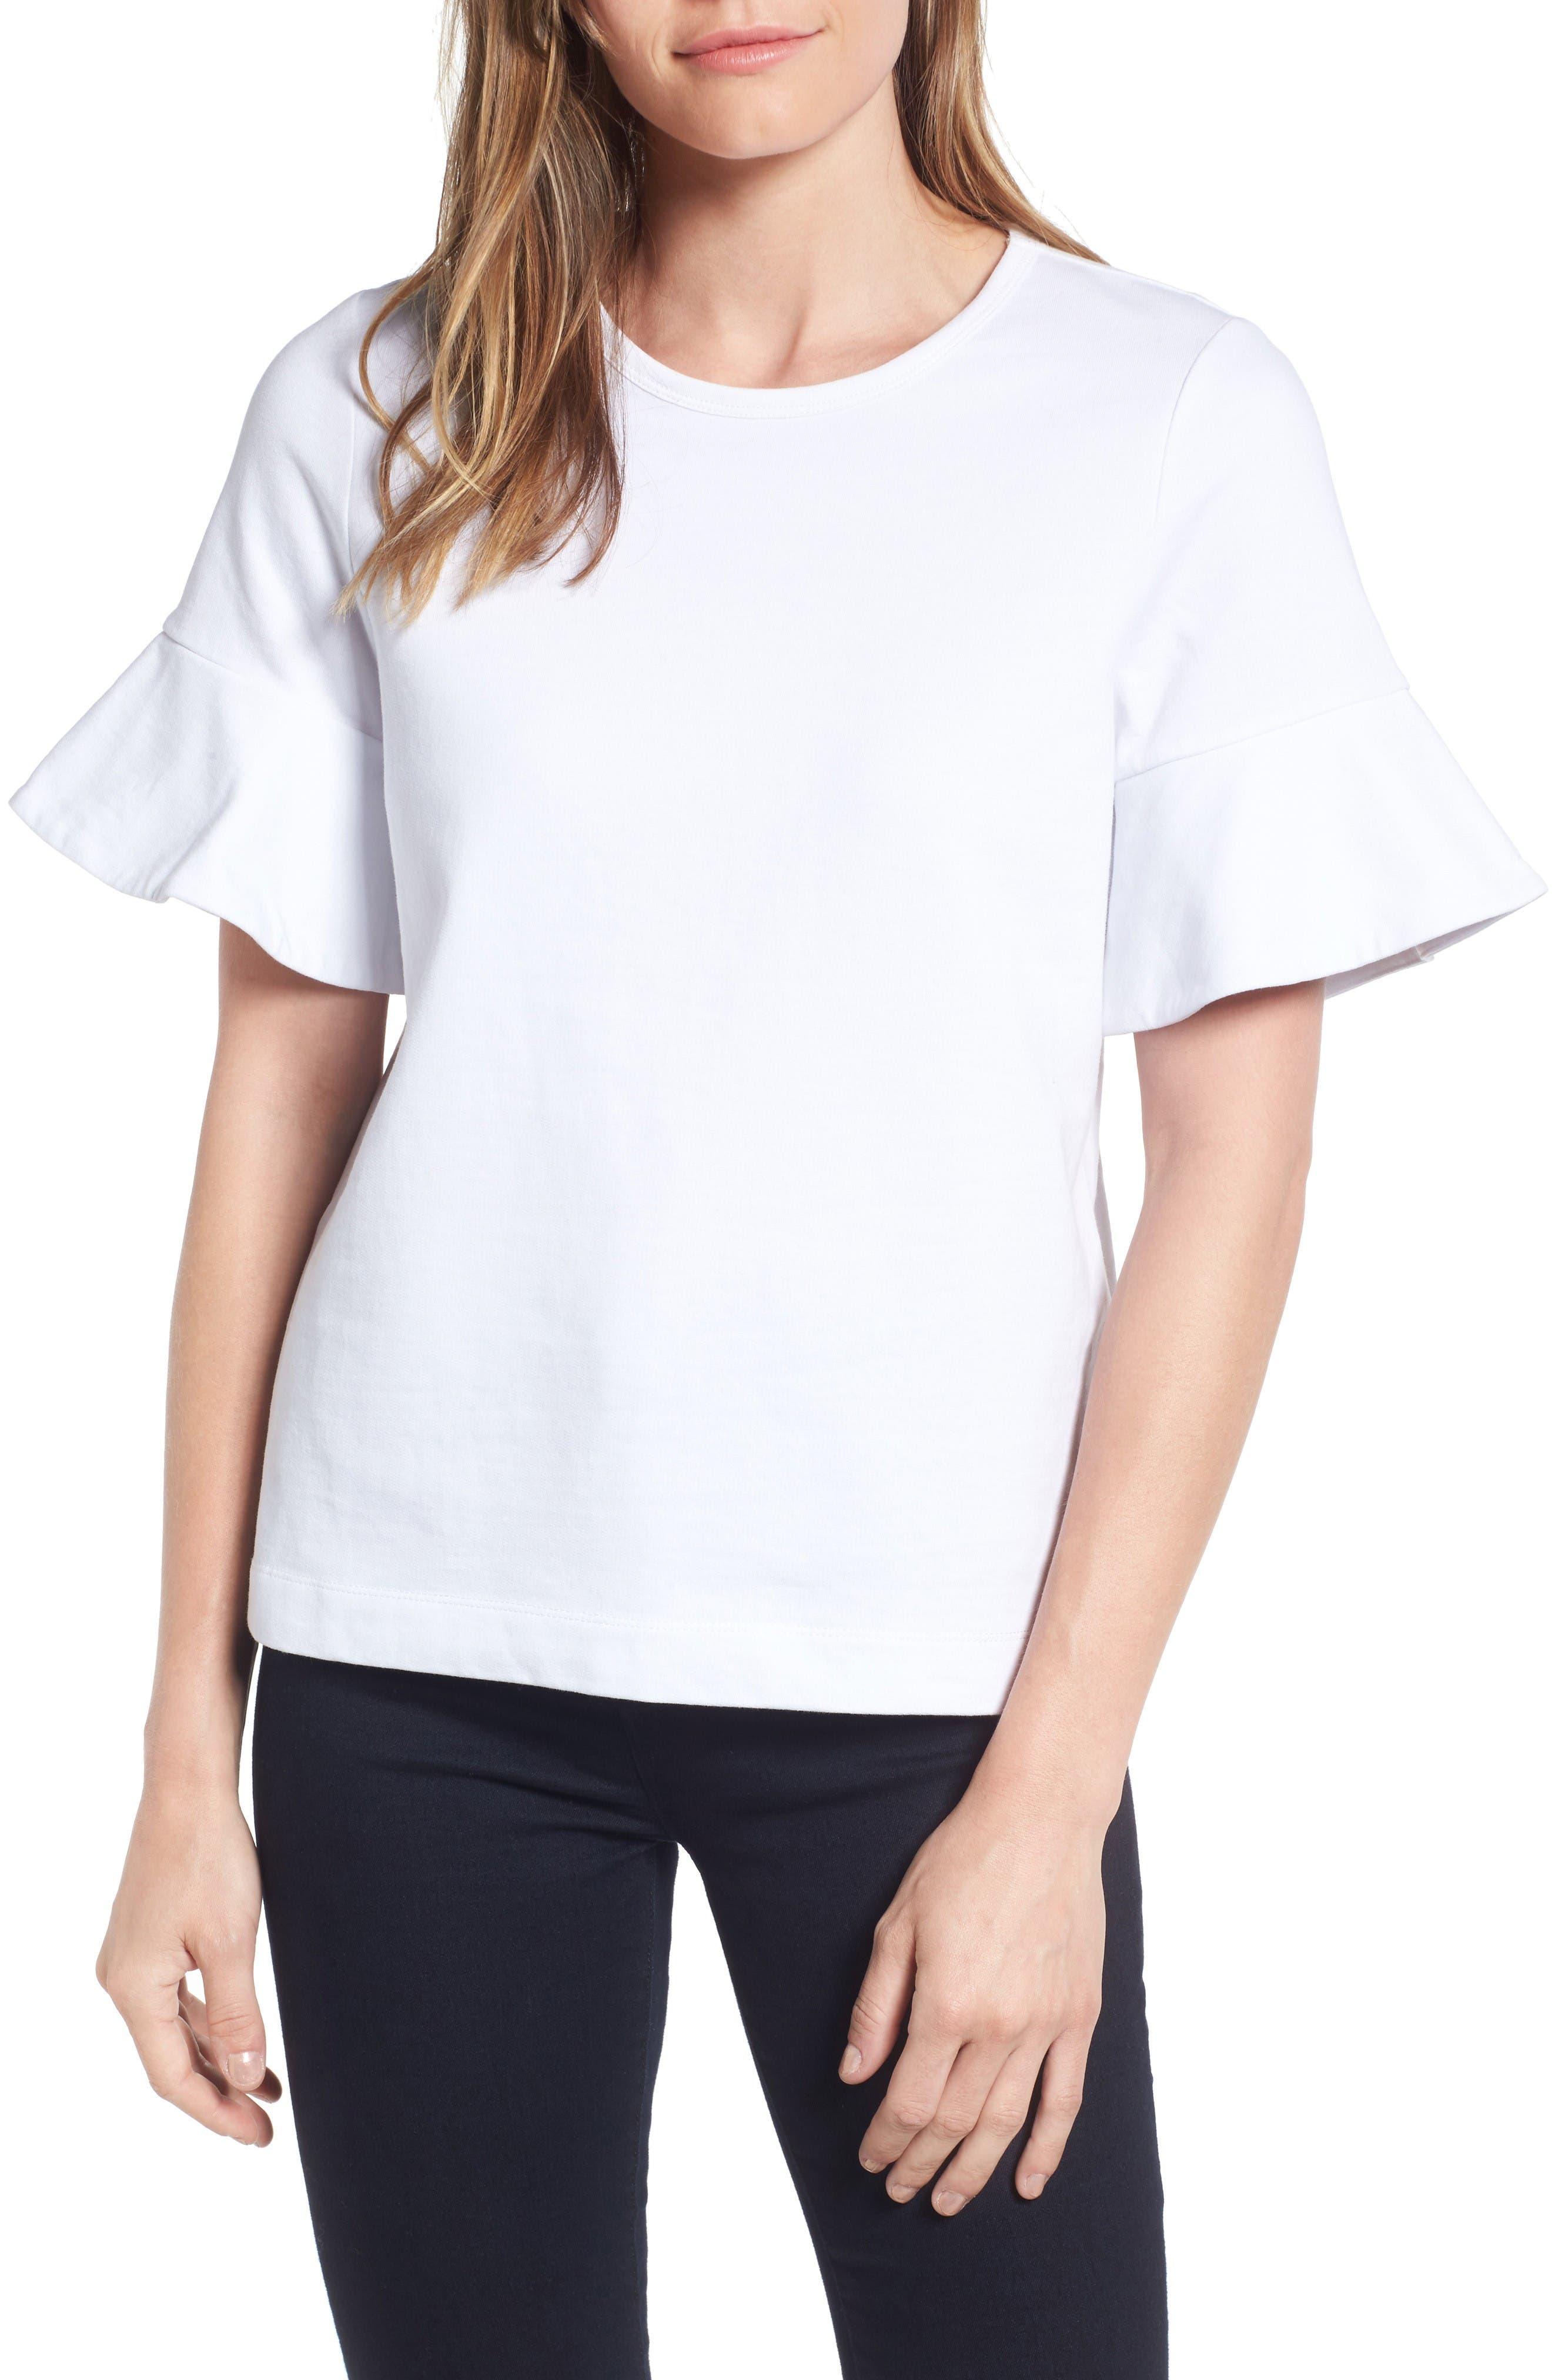 Draper James Ruffle Sleeve Tee (Nordstrom Exclusive)